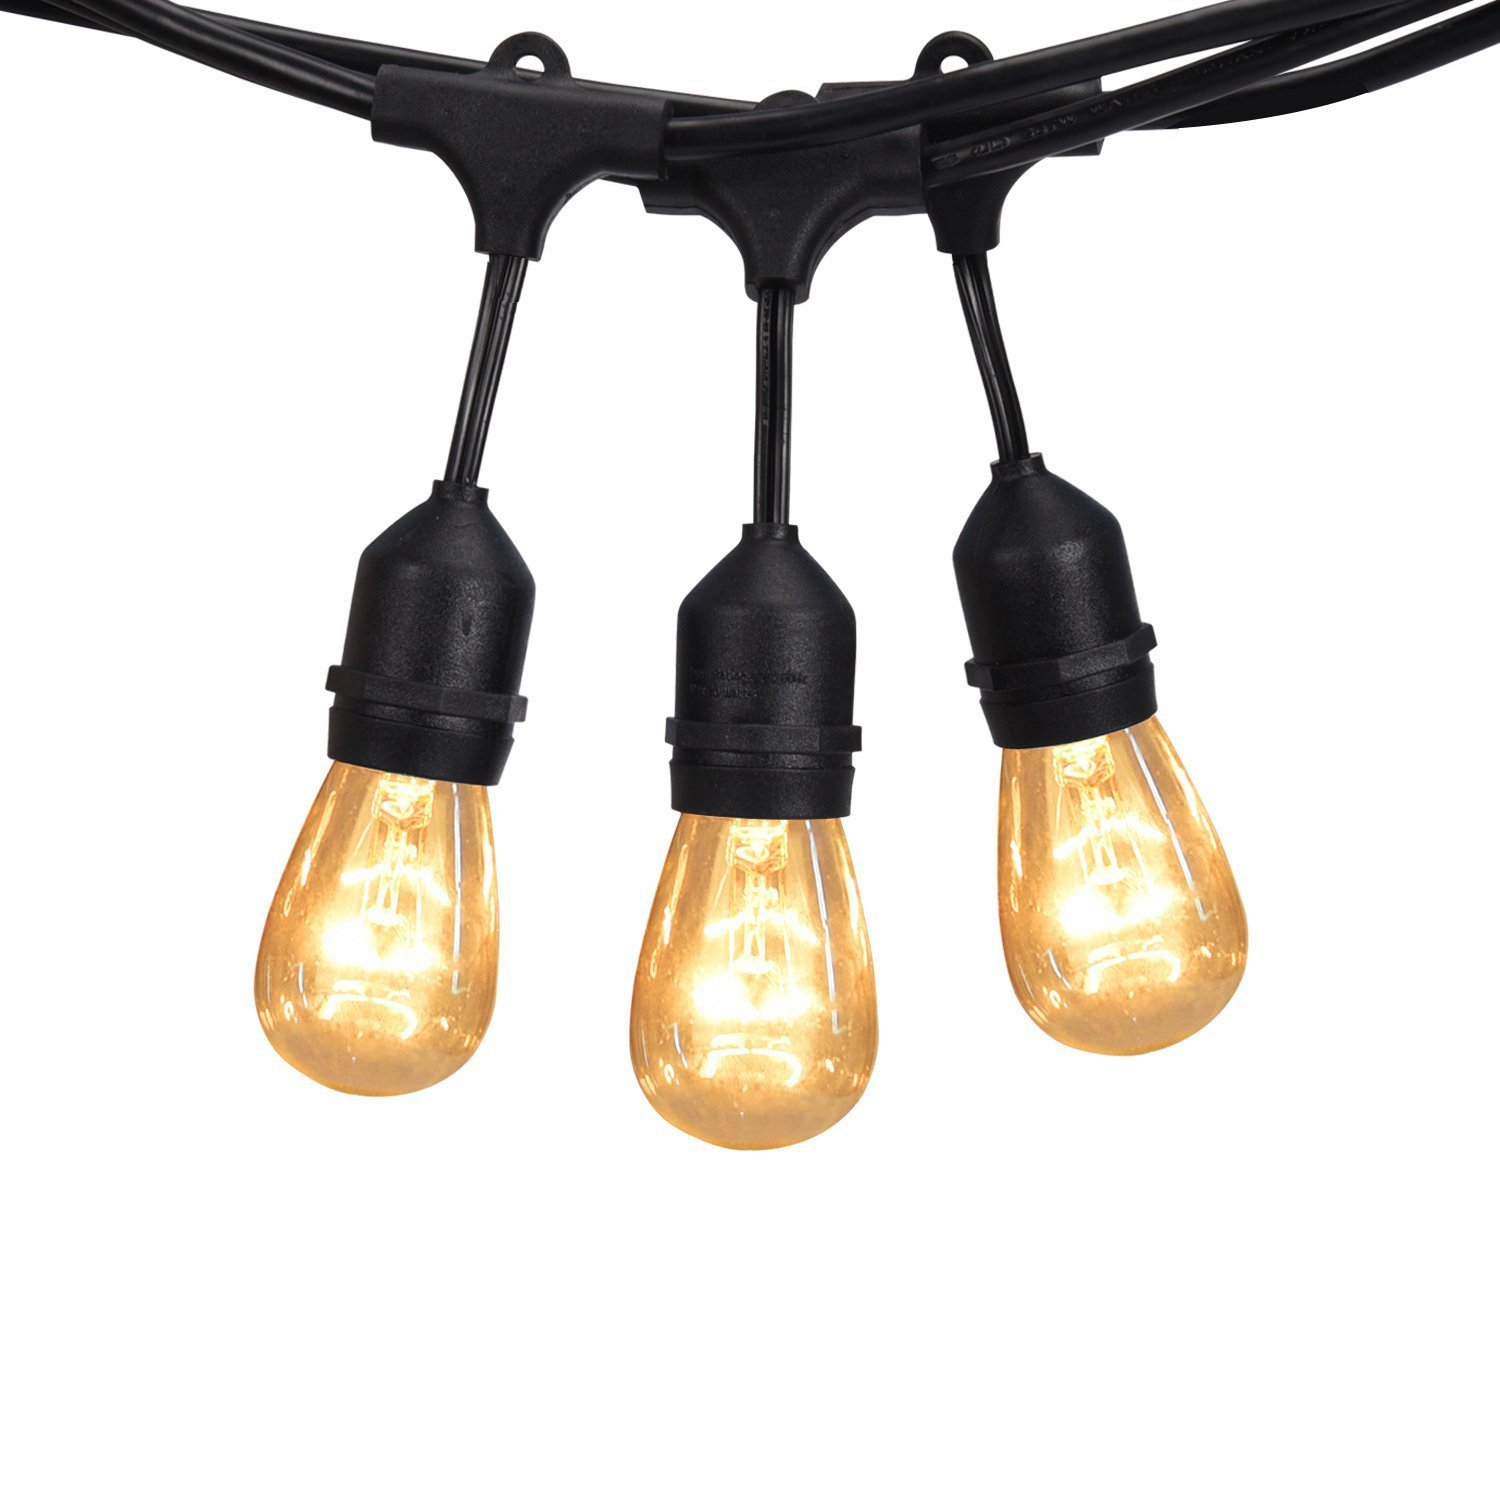 JACKYLED Outdoor String Lights 48ft Commercial Grade UL 18 Hanging Sockets 21 Bulbs Edison String Lights(3 Spare) Vintage Weatherproof for Patio Garden Porch